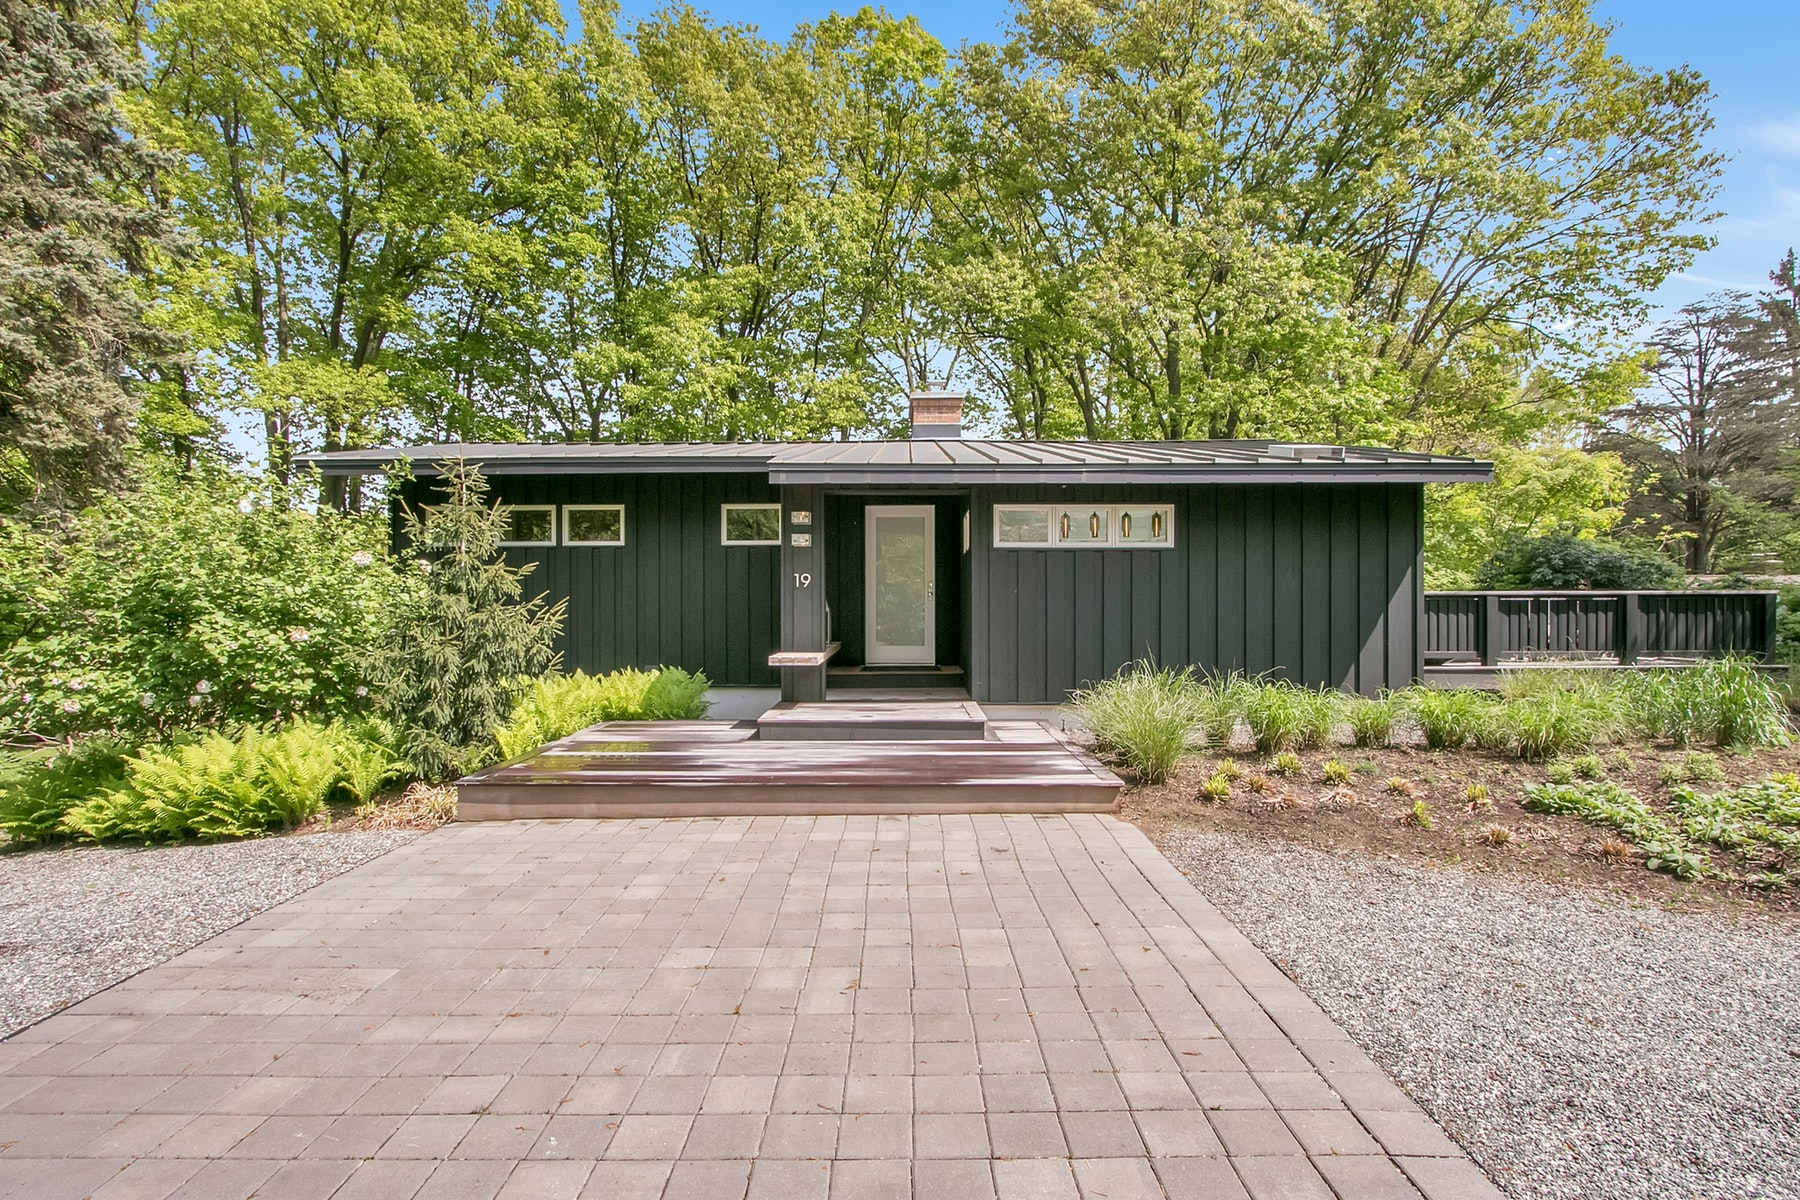 Single Family Homes for Sale at Flawless Mid-Century Modern 19 Hickory Hill Road Tappan, New York 10983 United States